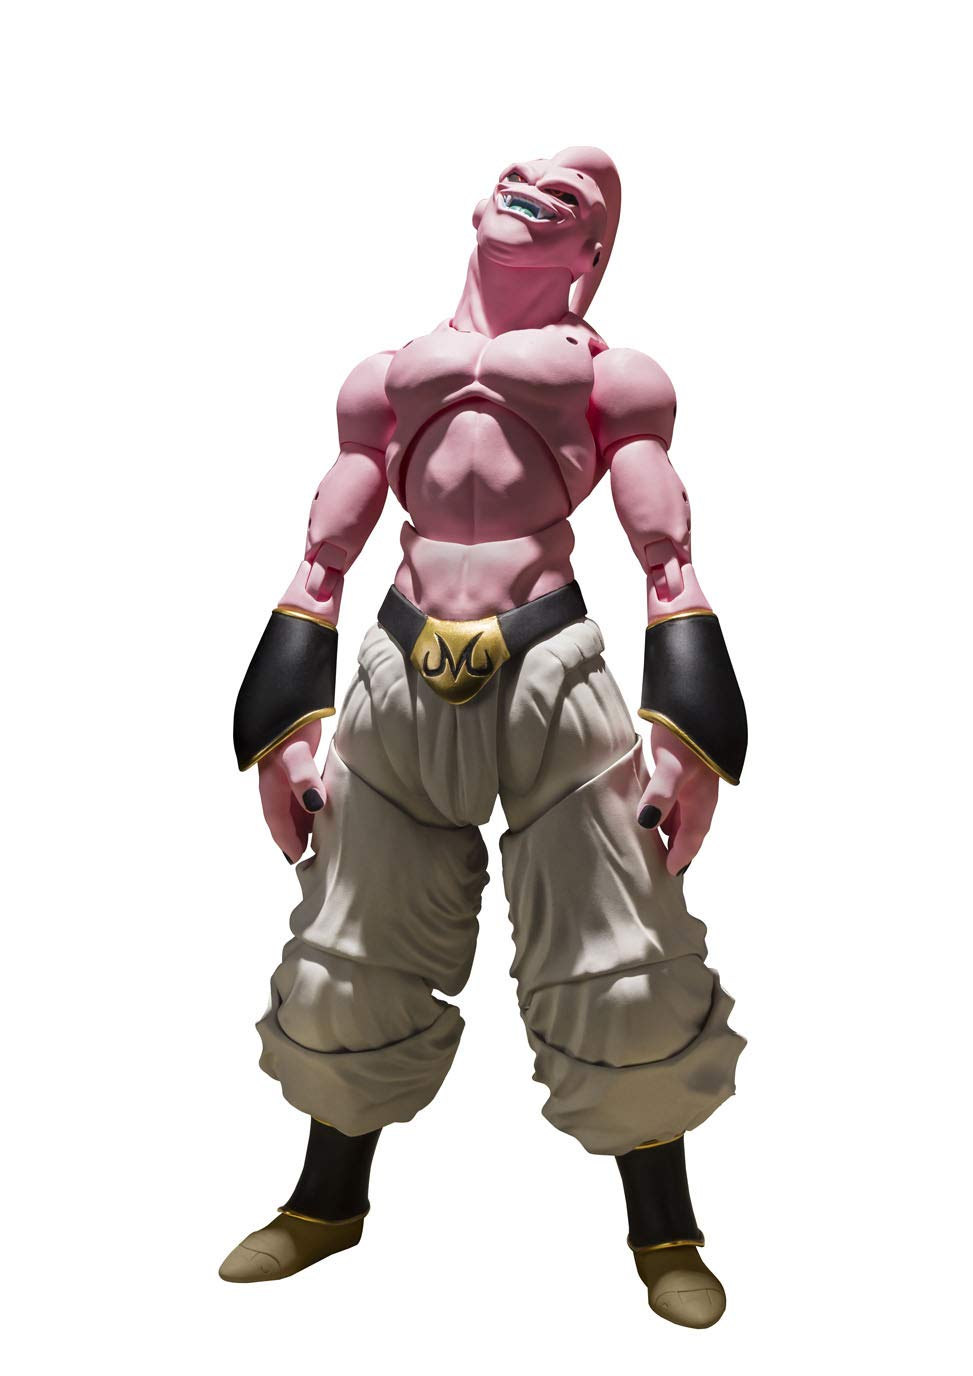 Trunks Bandai Tamashii Nations S.H. Figuarts Majin Buu (Evil Ver.) Dragonball Z Action Figure